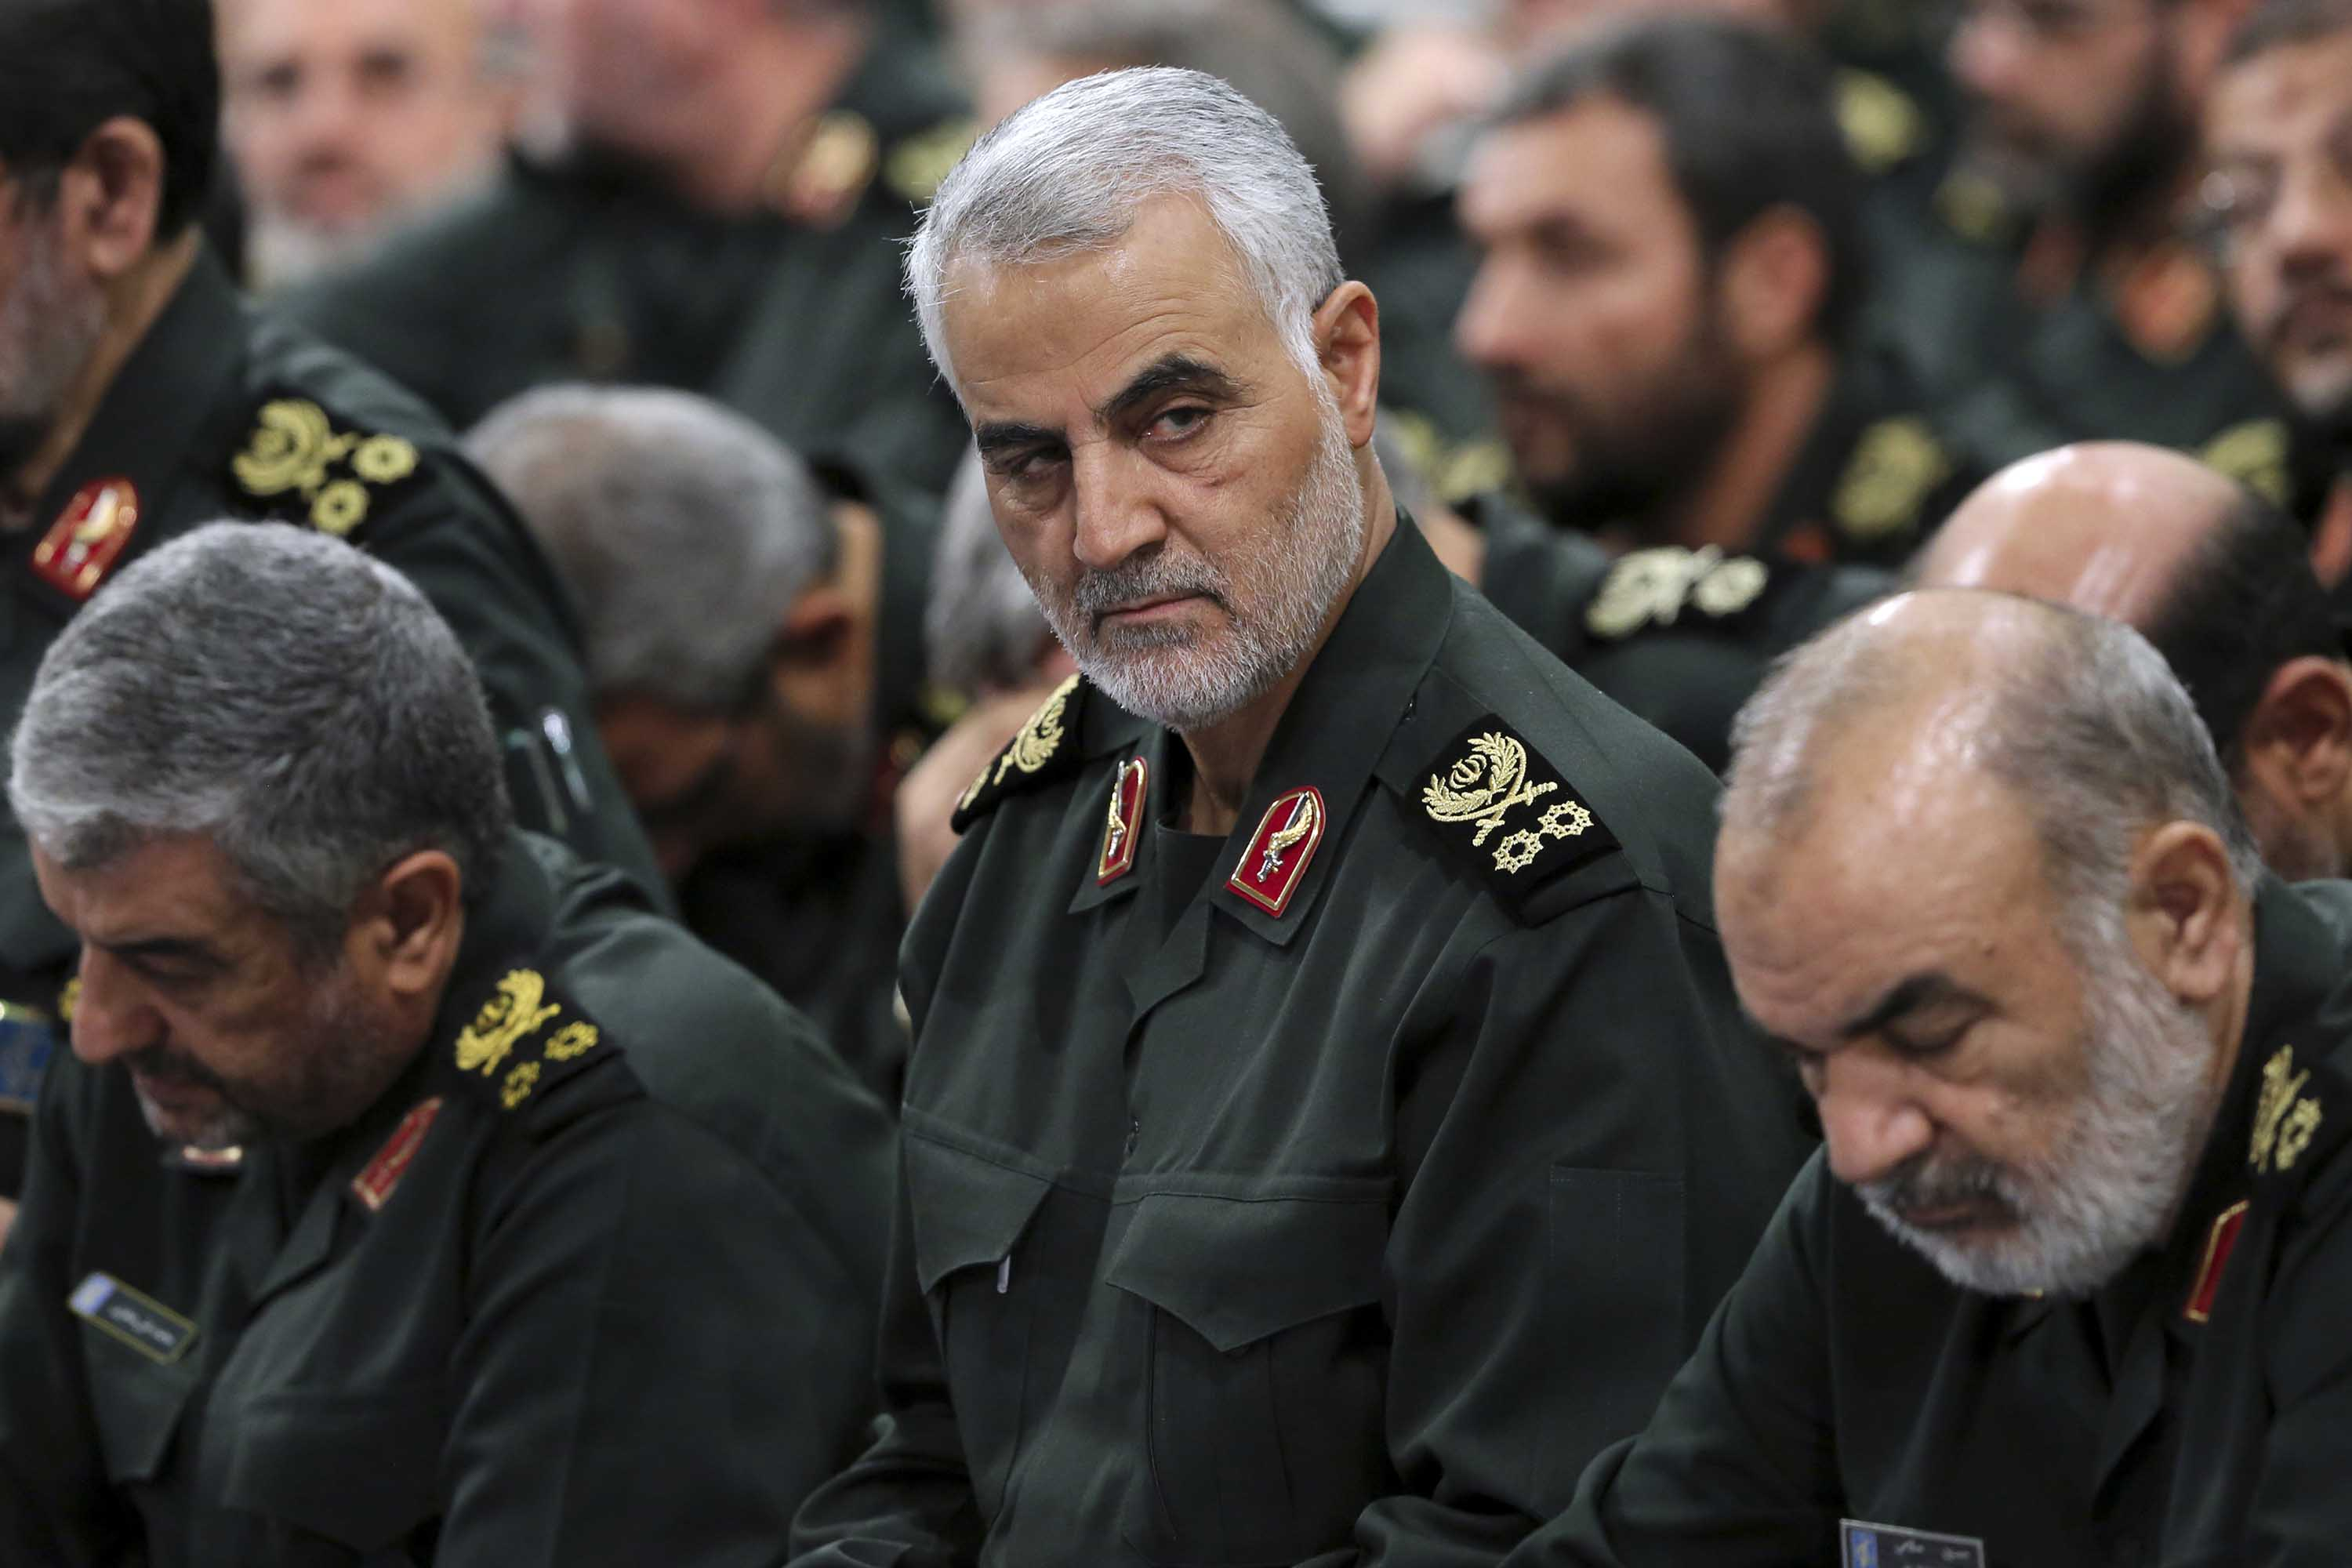 Soleimani attends a meeting in Tehran in September 2016. Credit: Handout/Office of the Iranian Supreme Leader via AP